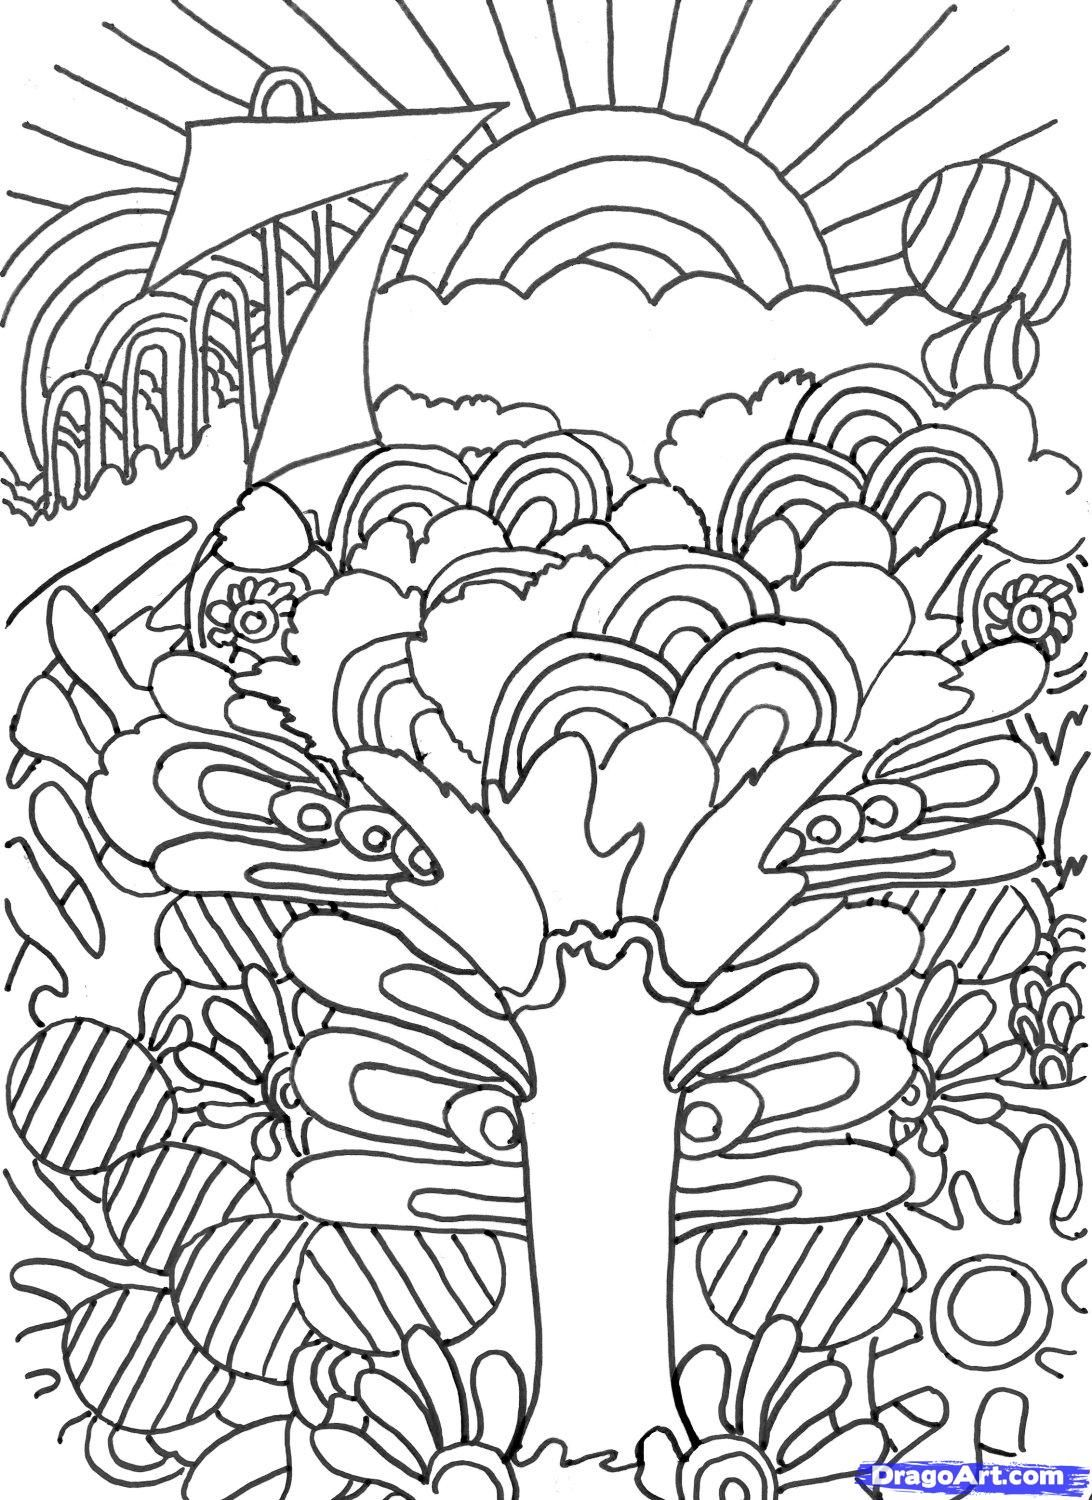 colouring pages - Psychedelic Hippie Coloring Pages